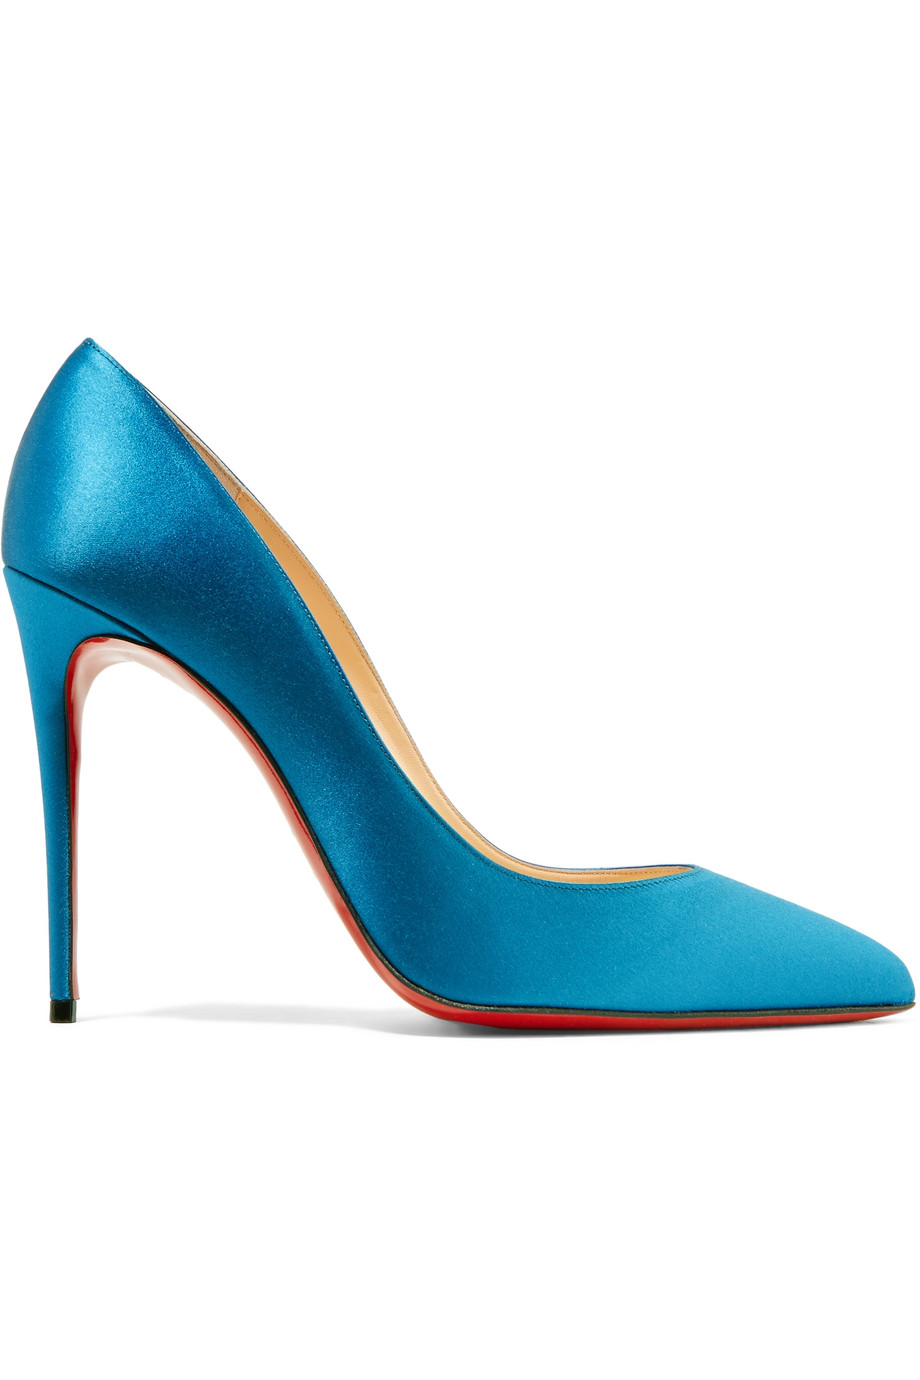 pumps satin Christian Louboutin buy pumps satin Christian Louboutin internet shop